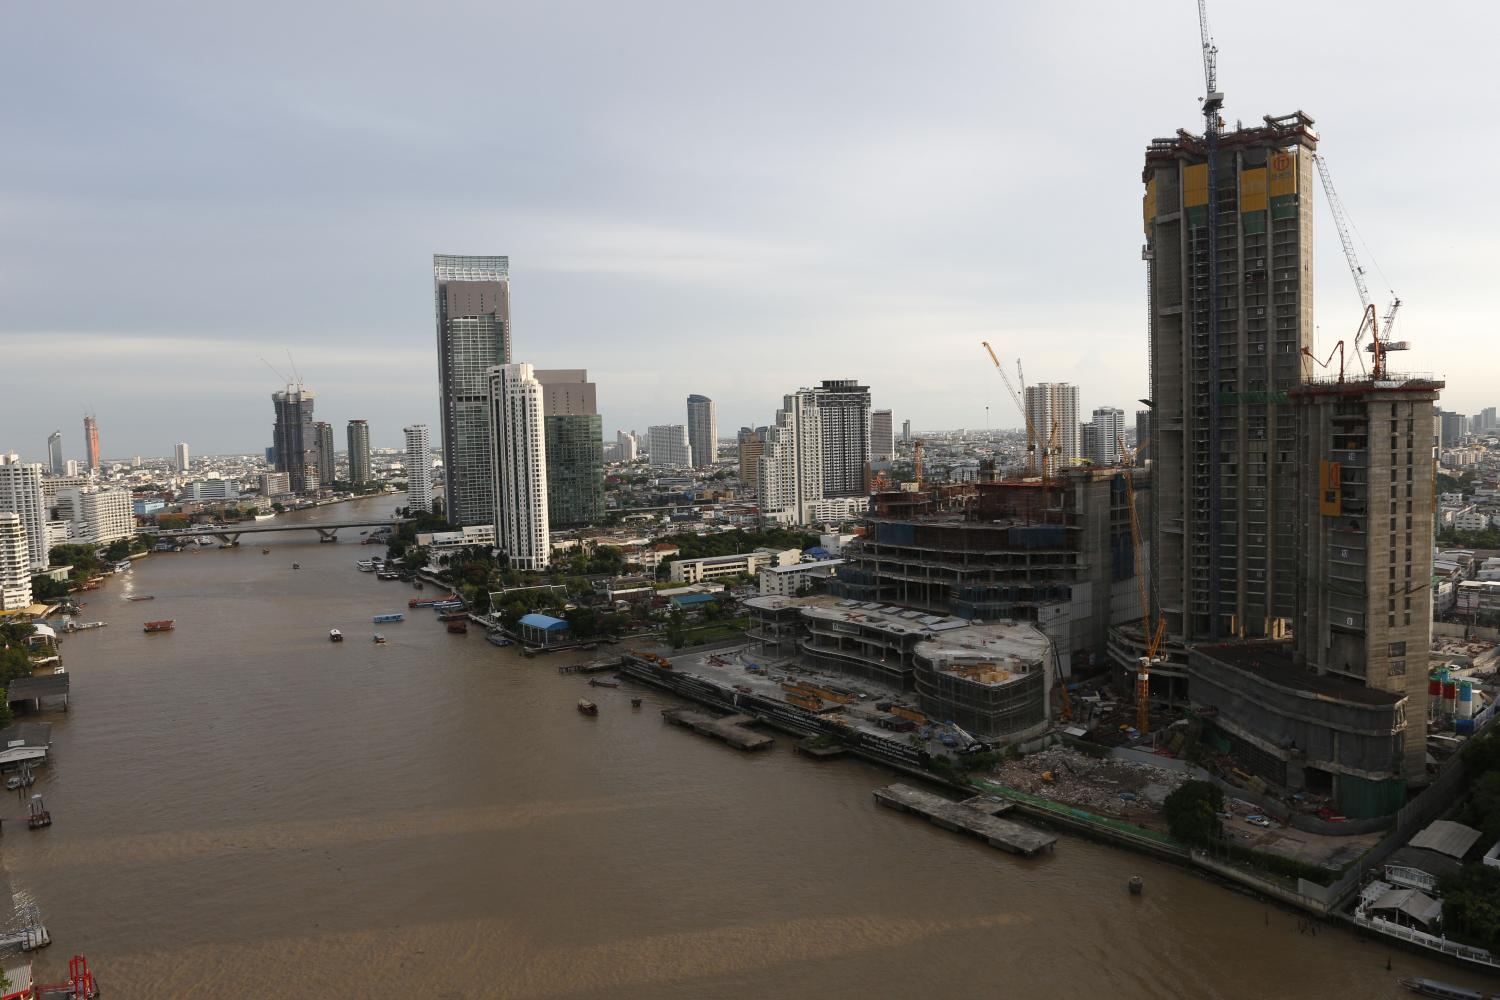 A 2017 aerial view of the site that would have hosted the contentious observation tower by the Chao Phraya River. (Photo by Pattarapong Chatpattarasill)